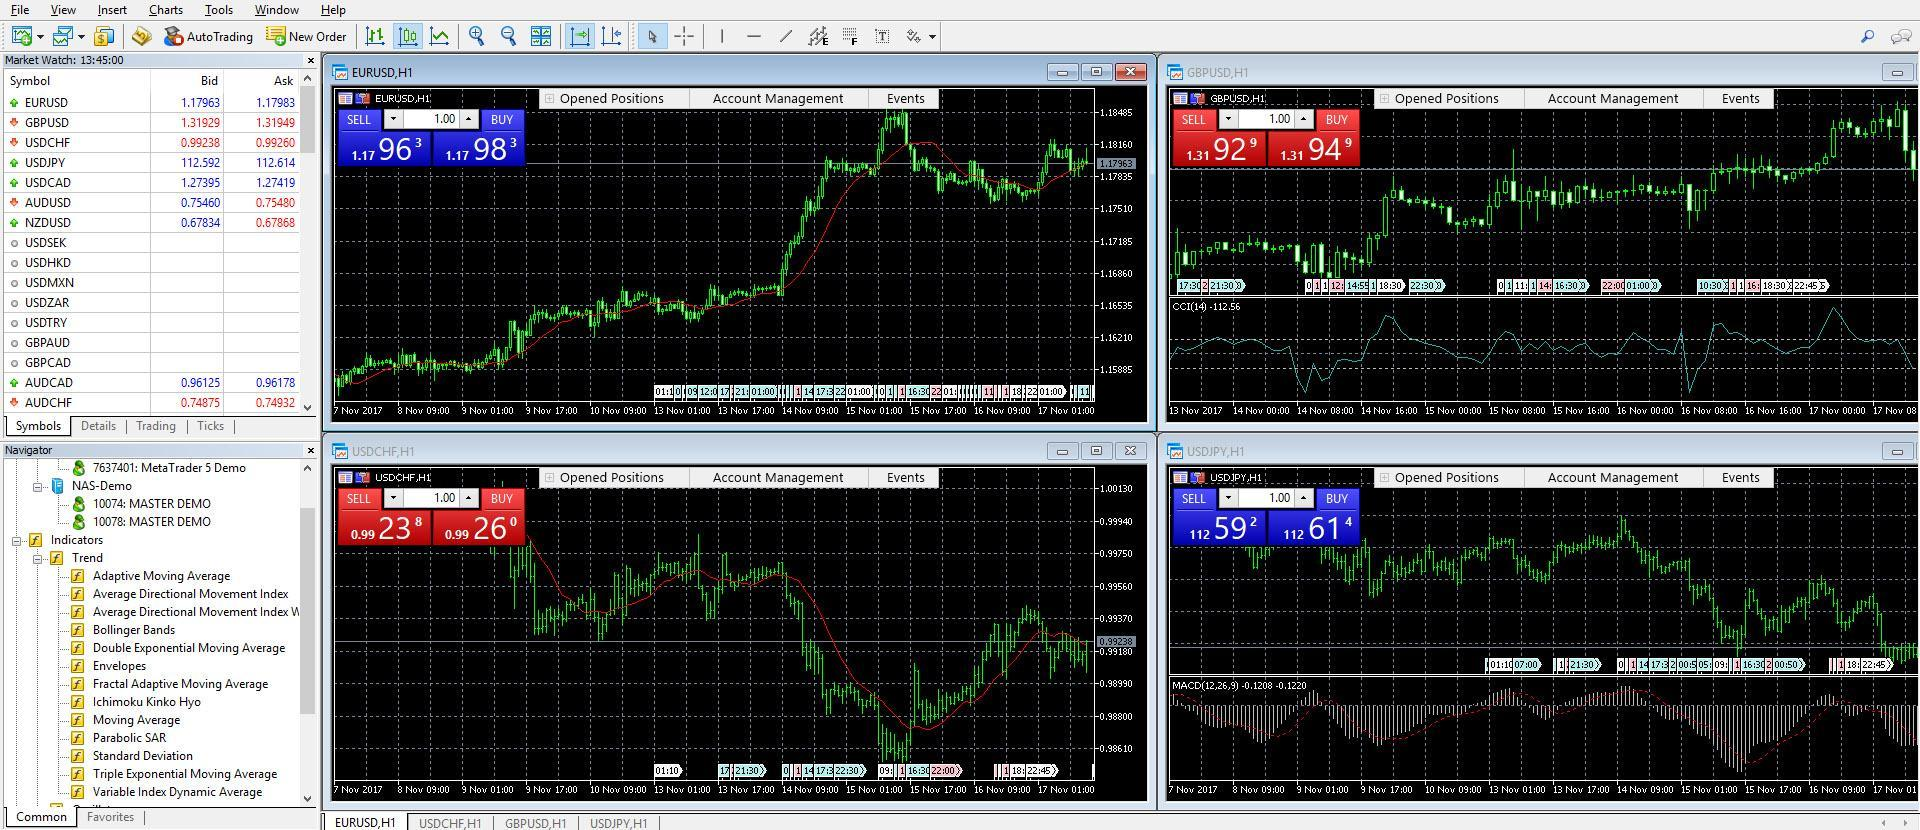 Multi Account Terminal Manager for Metatrader 4 (MT4) and Metatrader 5 (MT5)